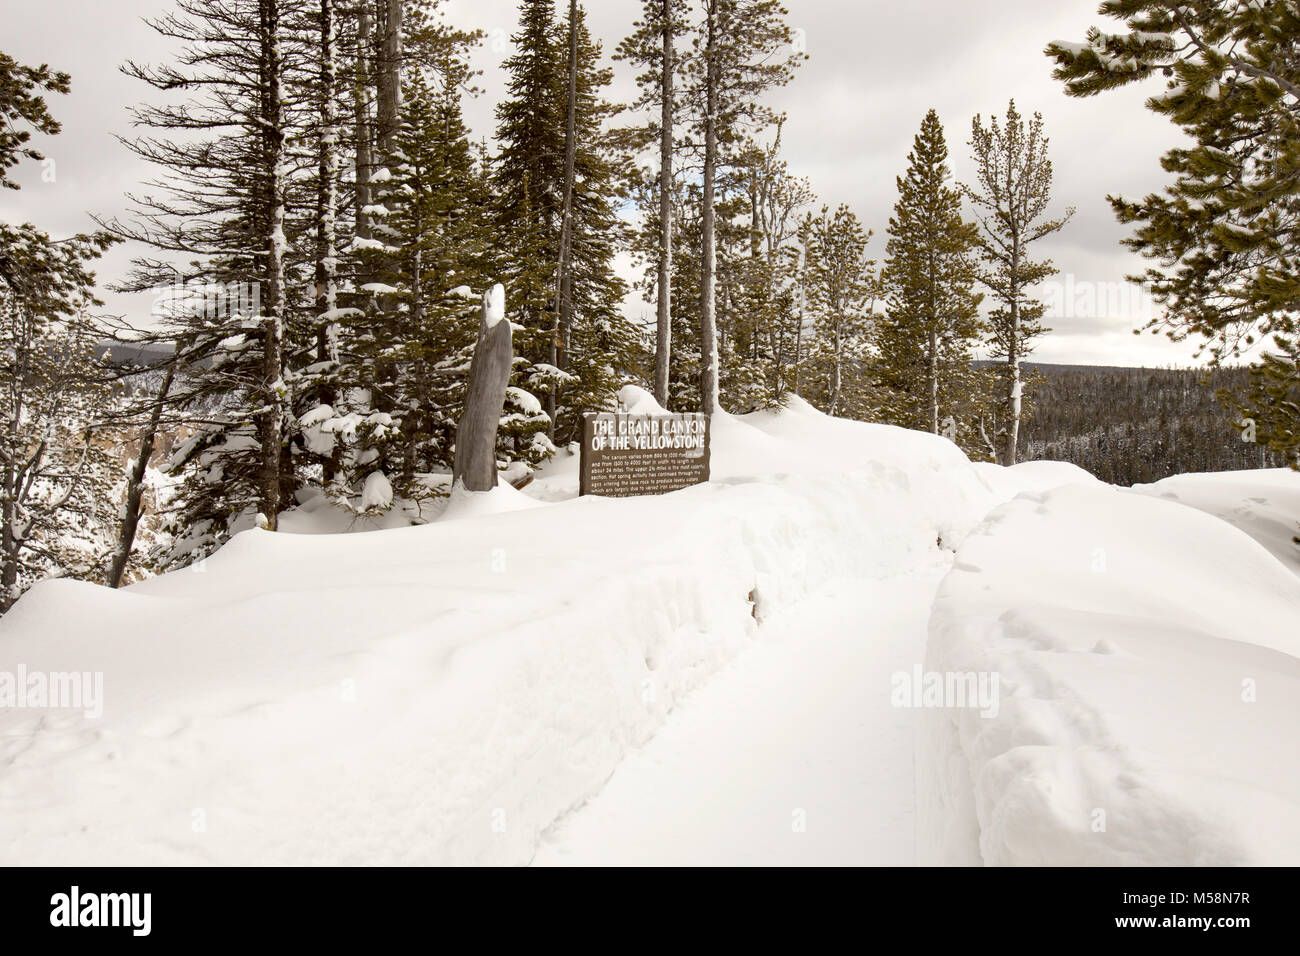 Snowy Path And Sign For The Grand Canyon Of Yellowstone